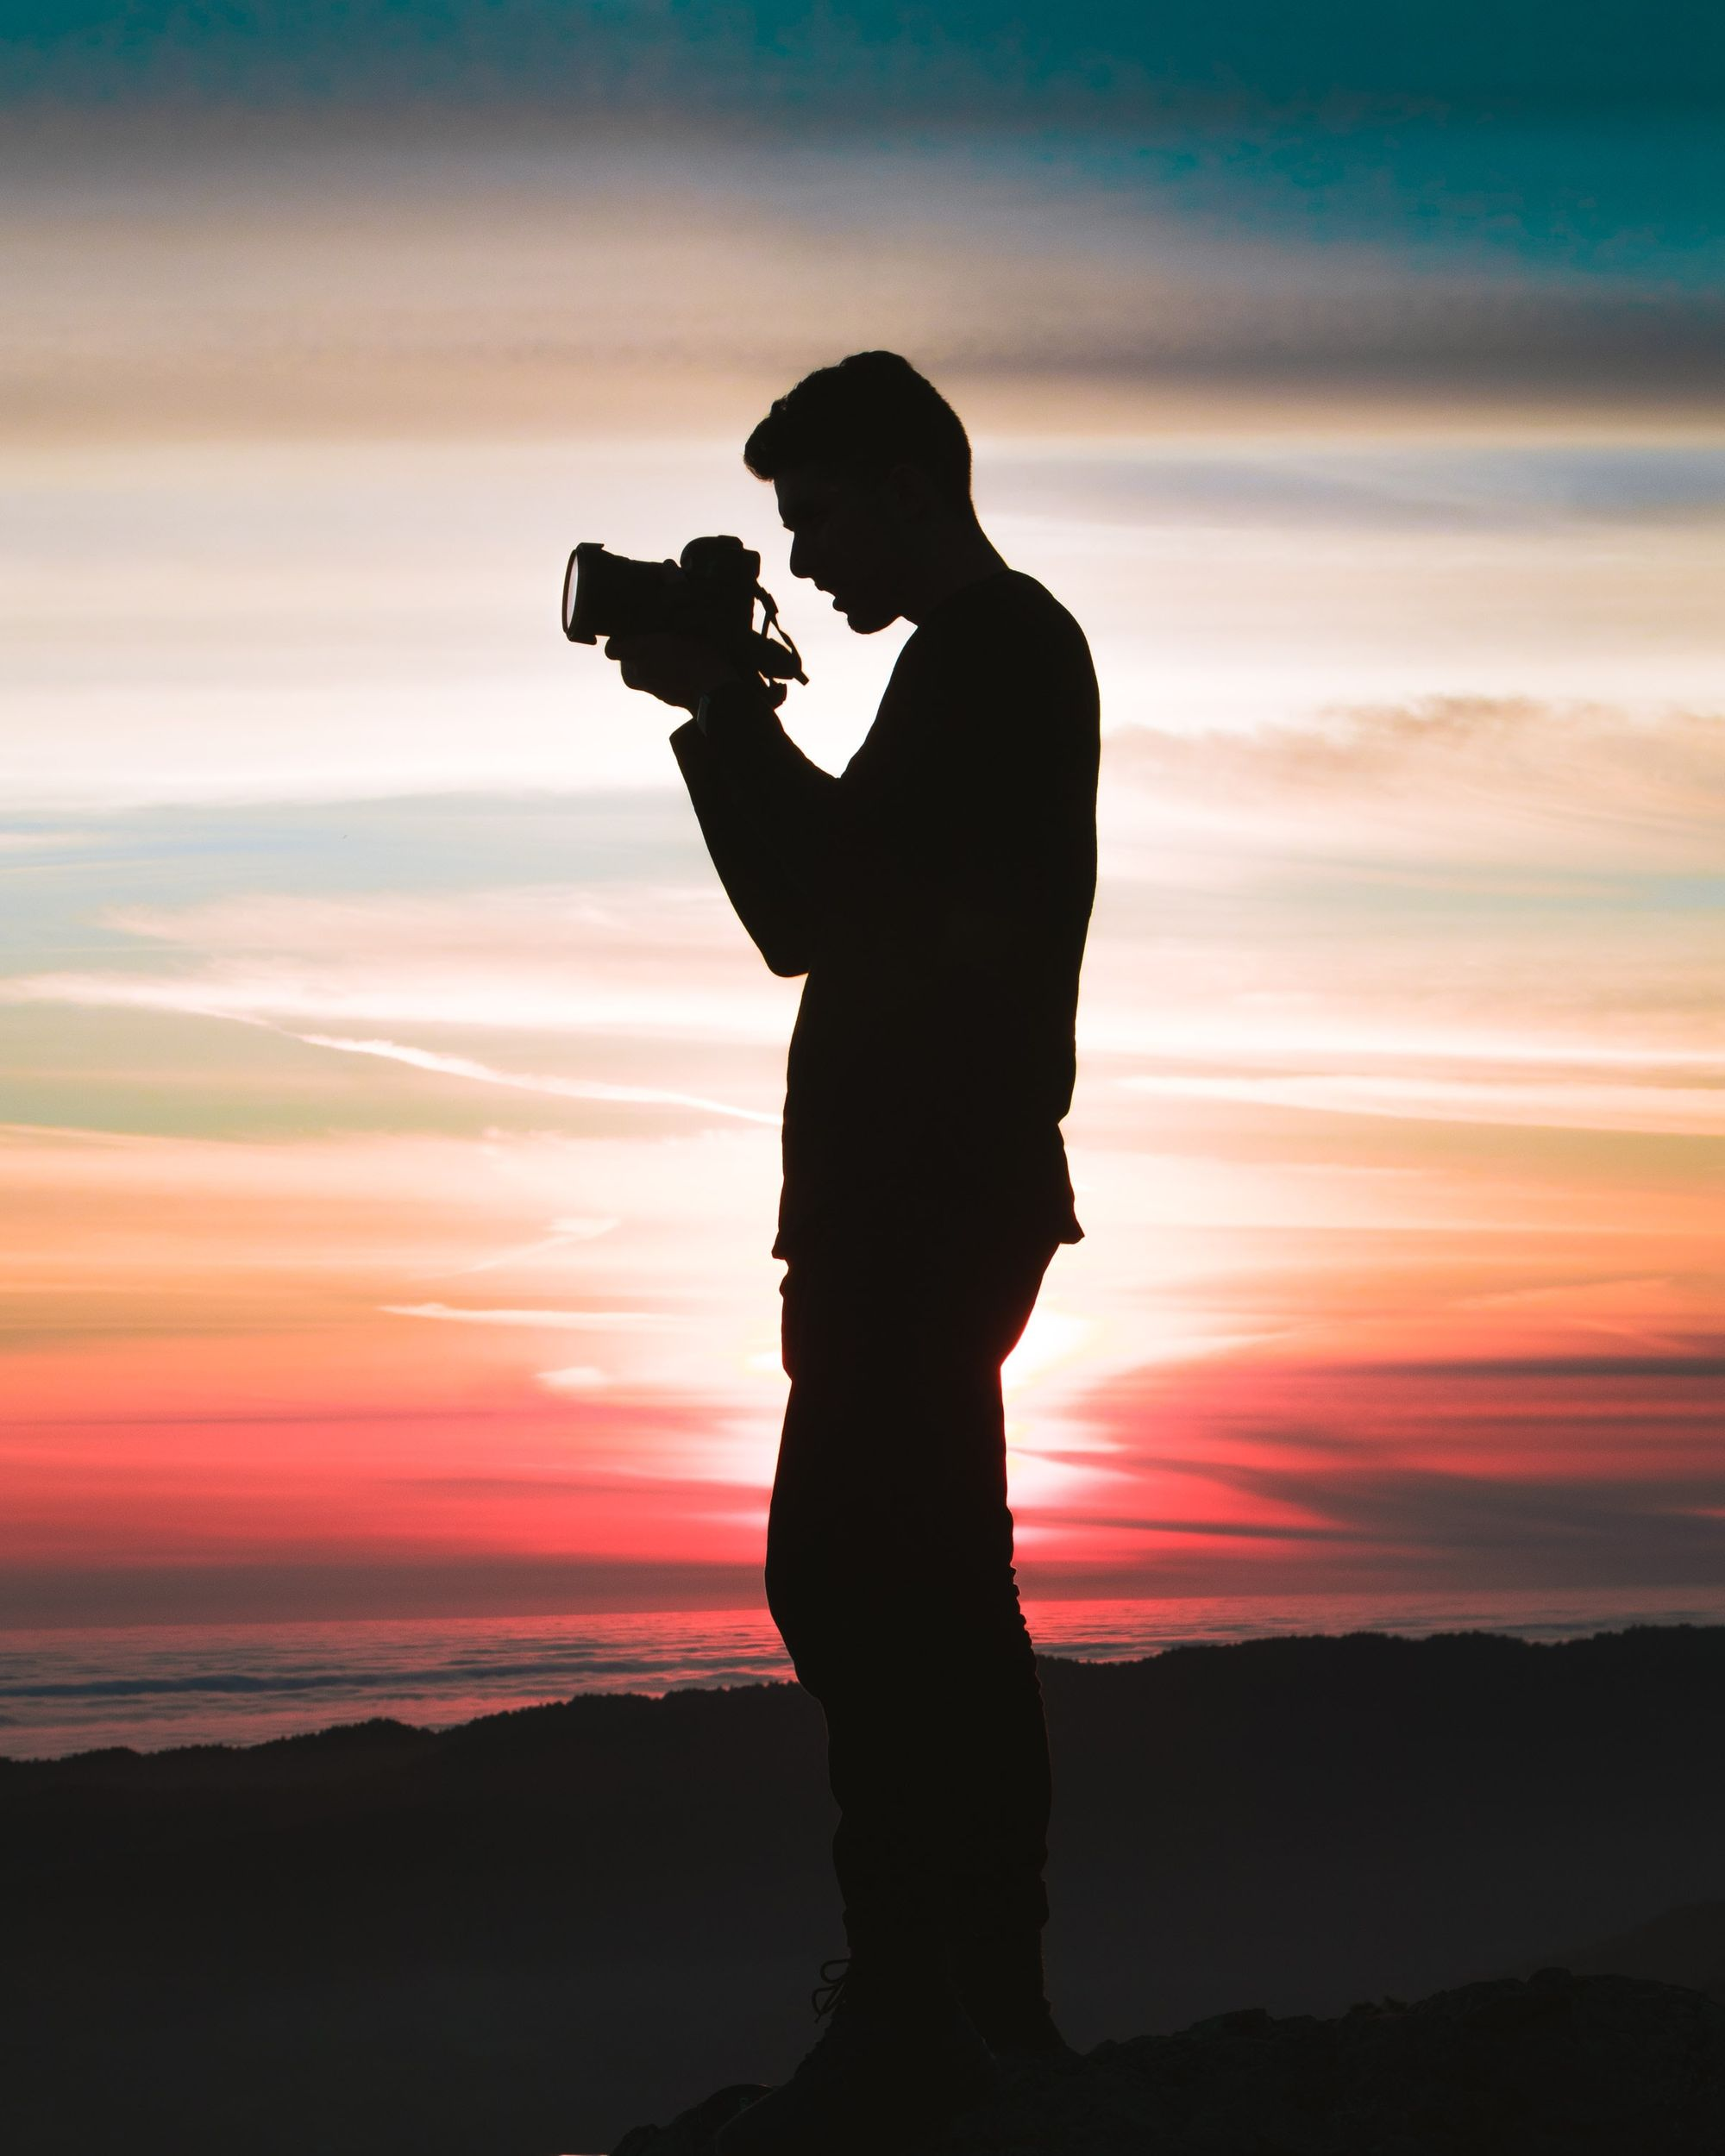 Learn more about photography